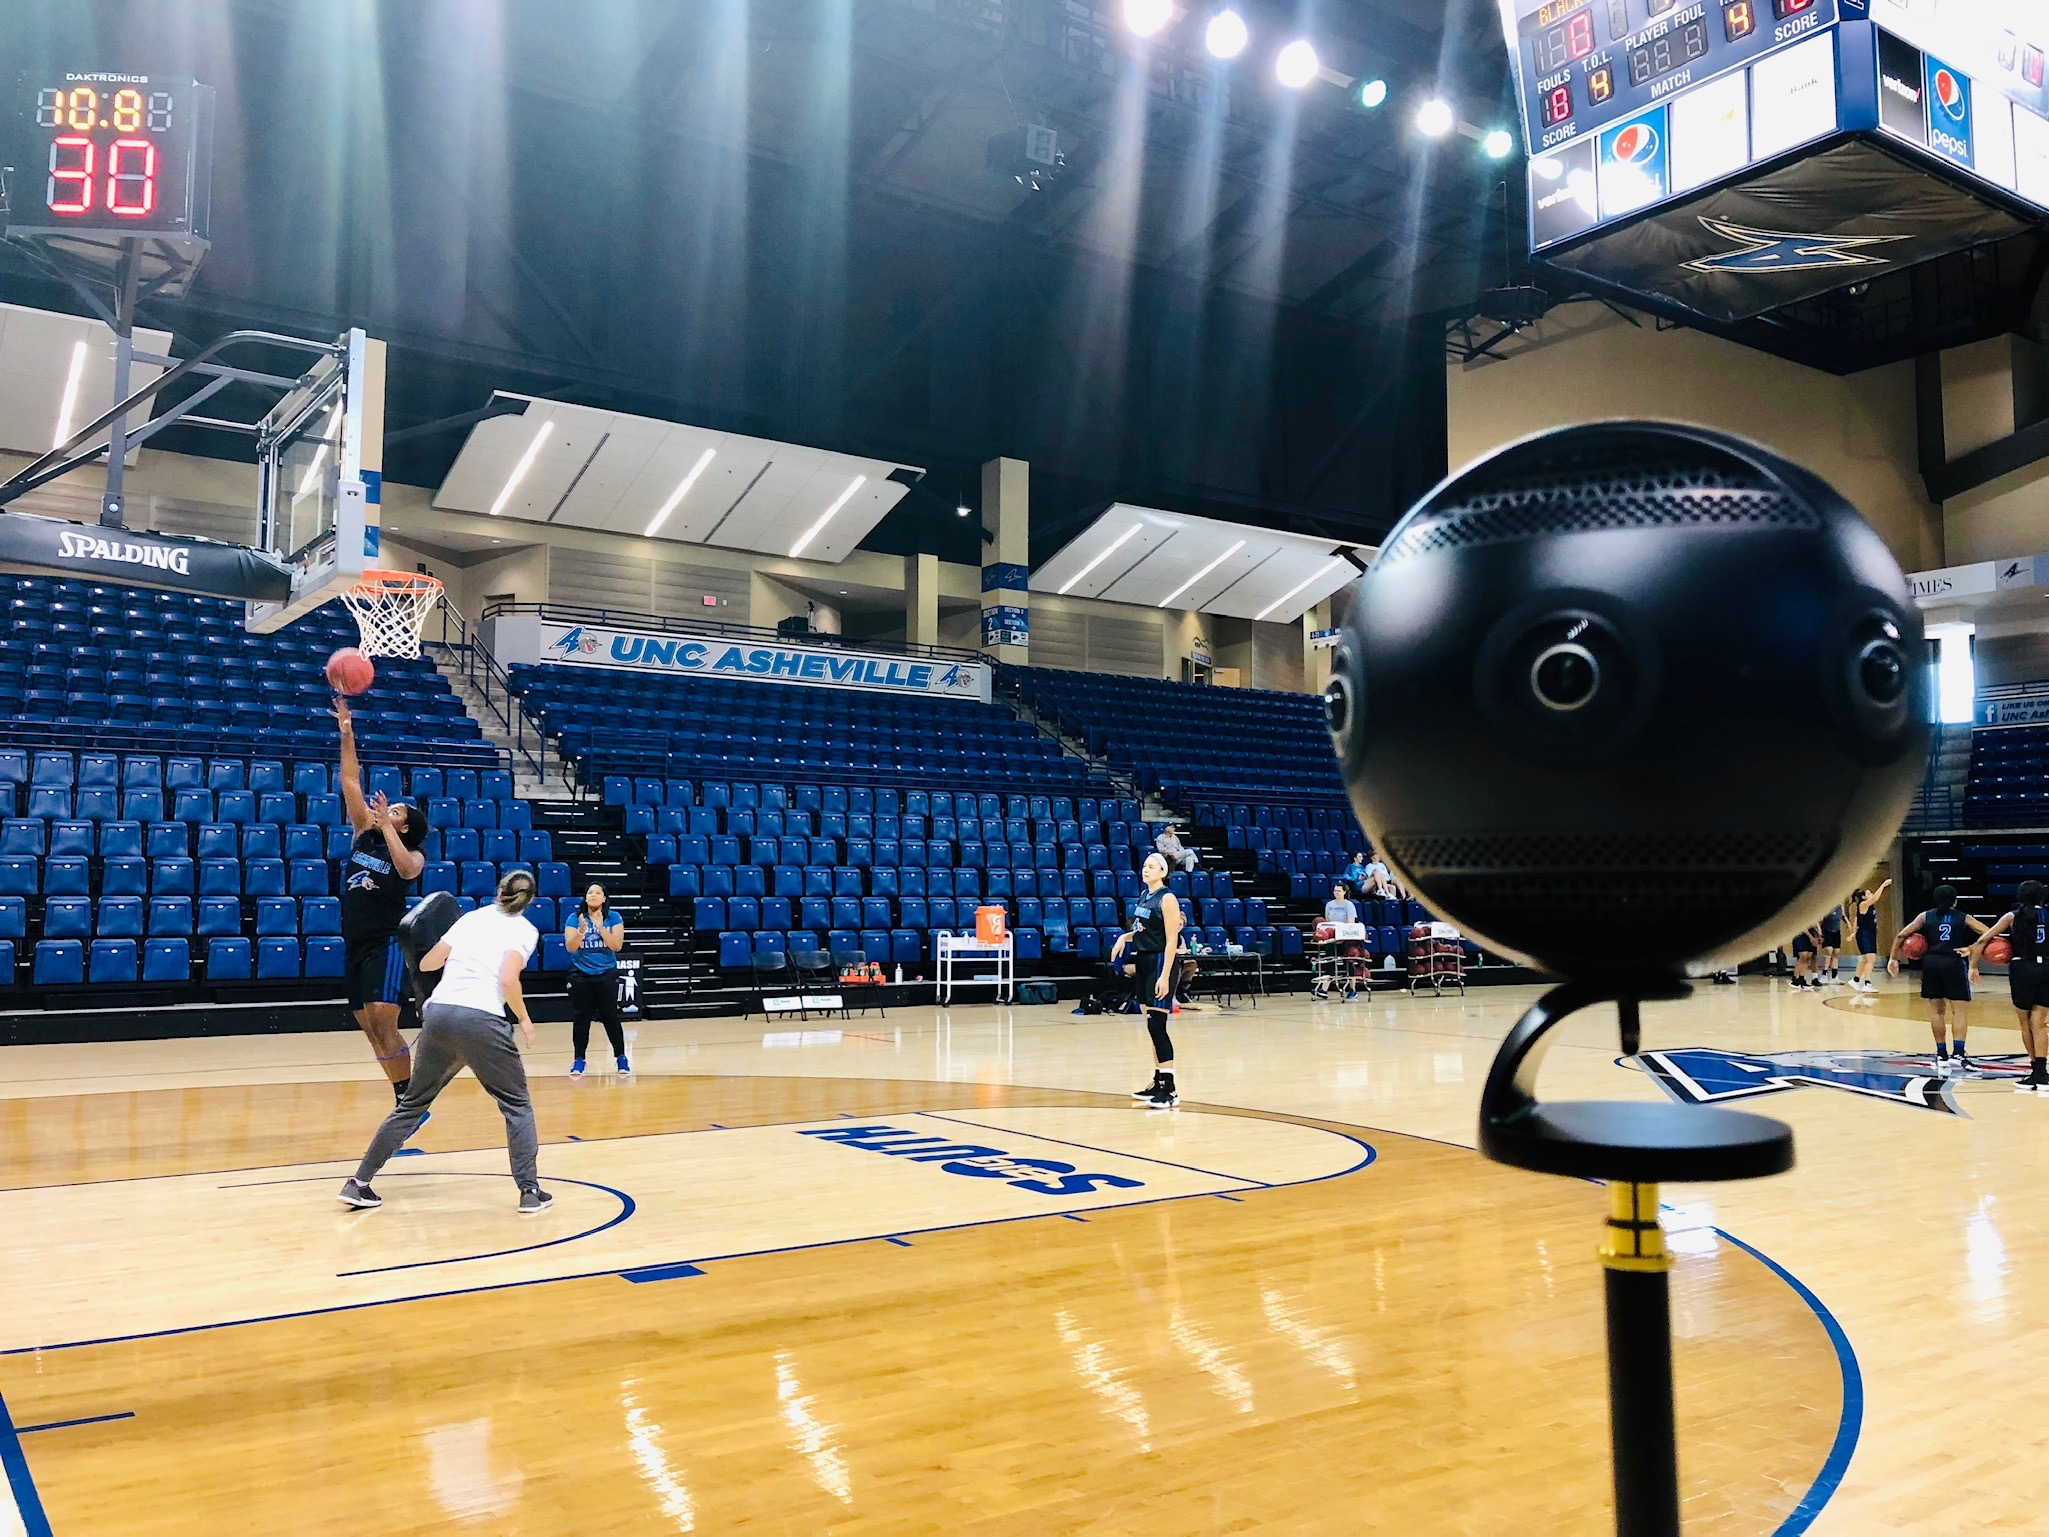 A 360-degree camera films basketball practice at UNC Asheville (Photo by Ryan Jones).